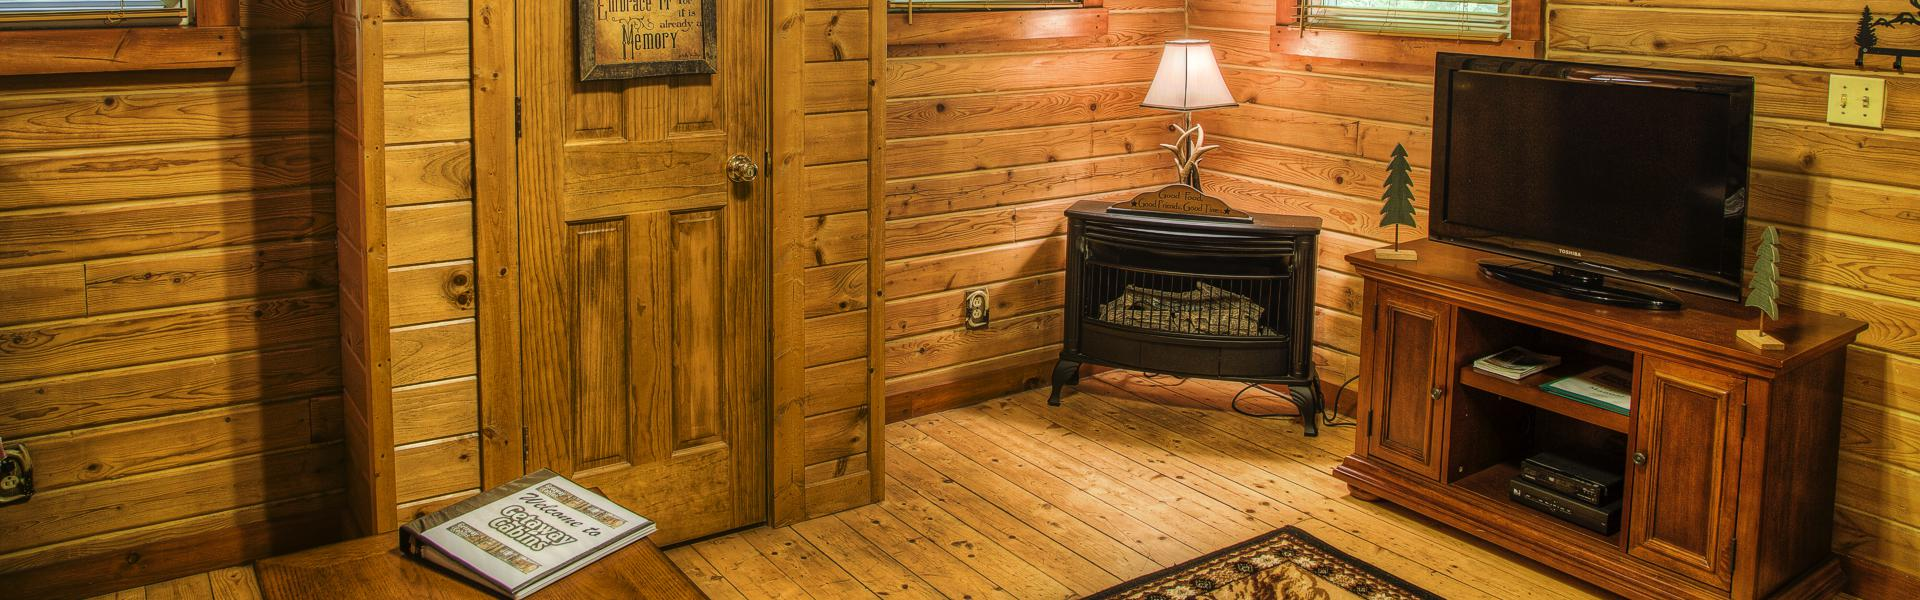 ohio rentals hills cabins rental edge in cabin kitchen forest hocking logan